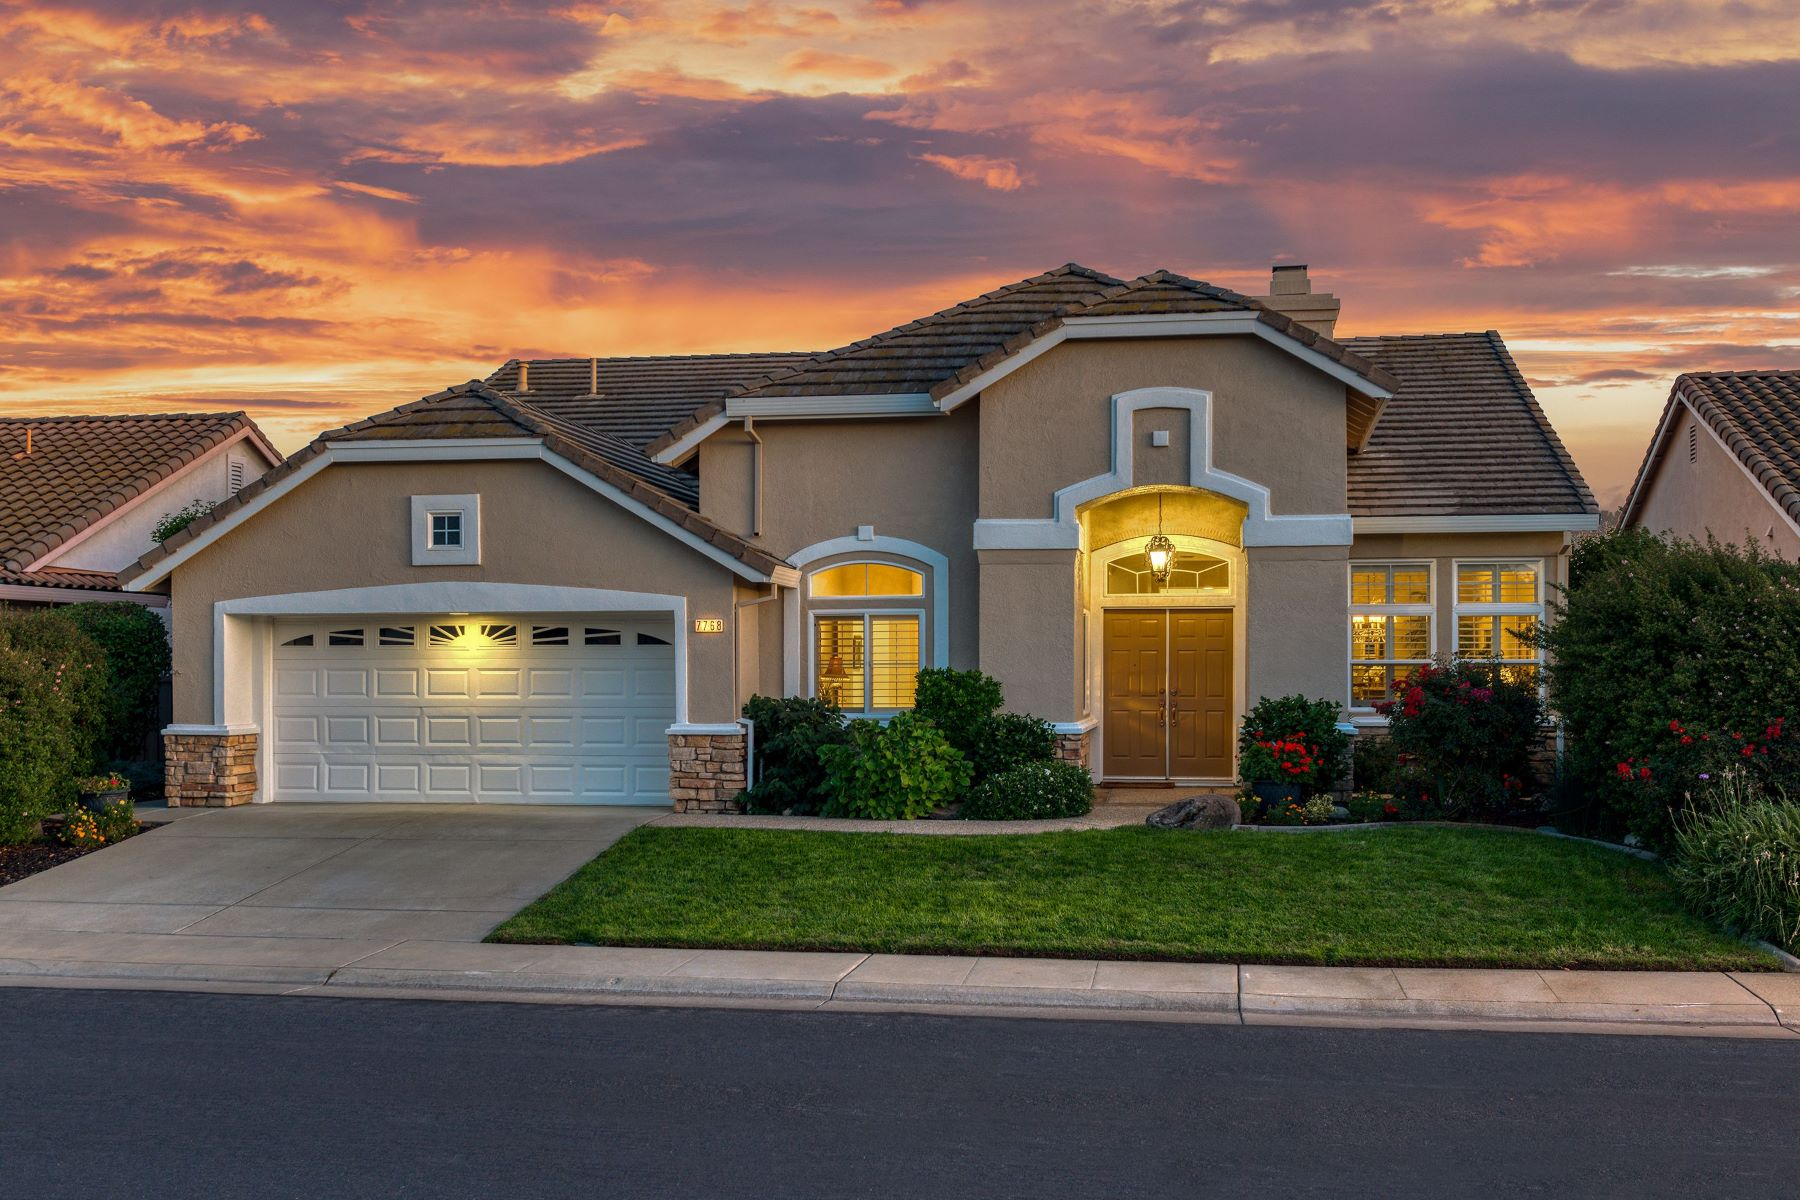 Single Family Homes for Active at 7768 Rosestone Lane, Roseville, CA 95747 7768 Rosestone Lane Roseville, California 95747 United States